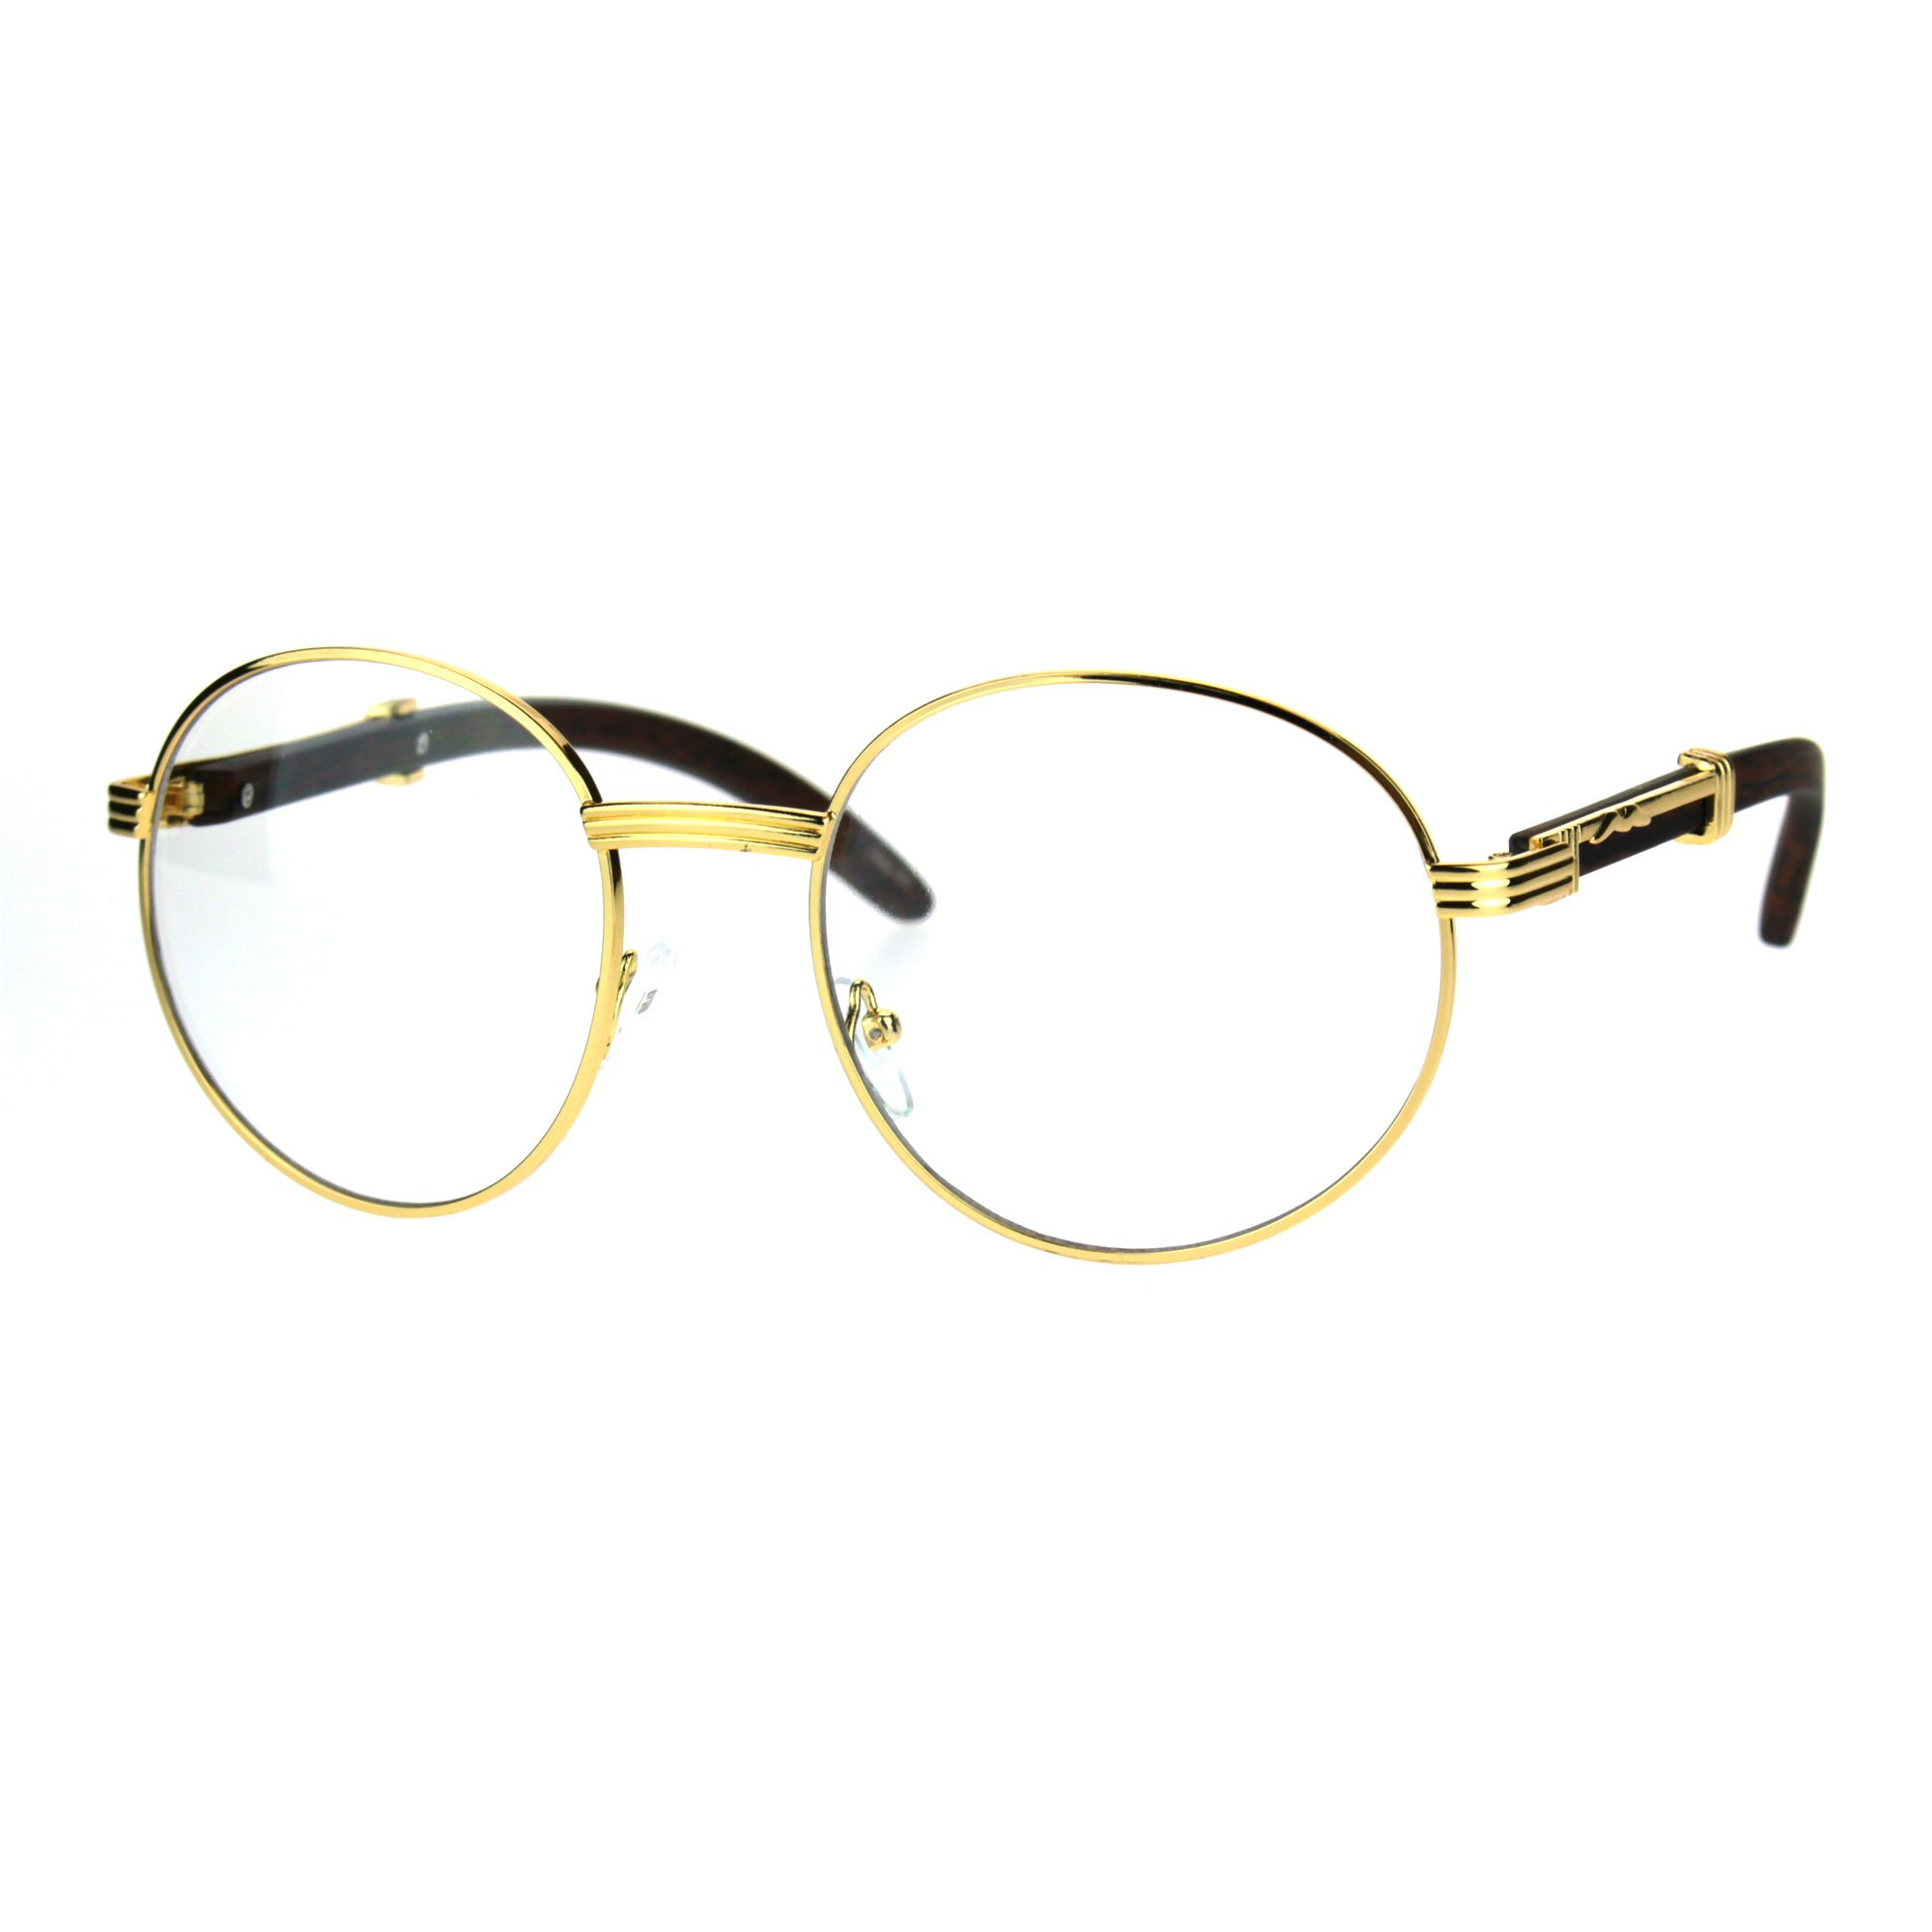 SA106 Retro Art Nouveau Vintage Style Small Metal Frame Eyeglasses Round Yellow Gold by SA106